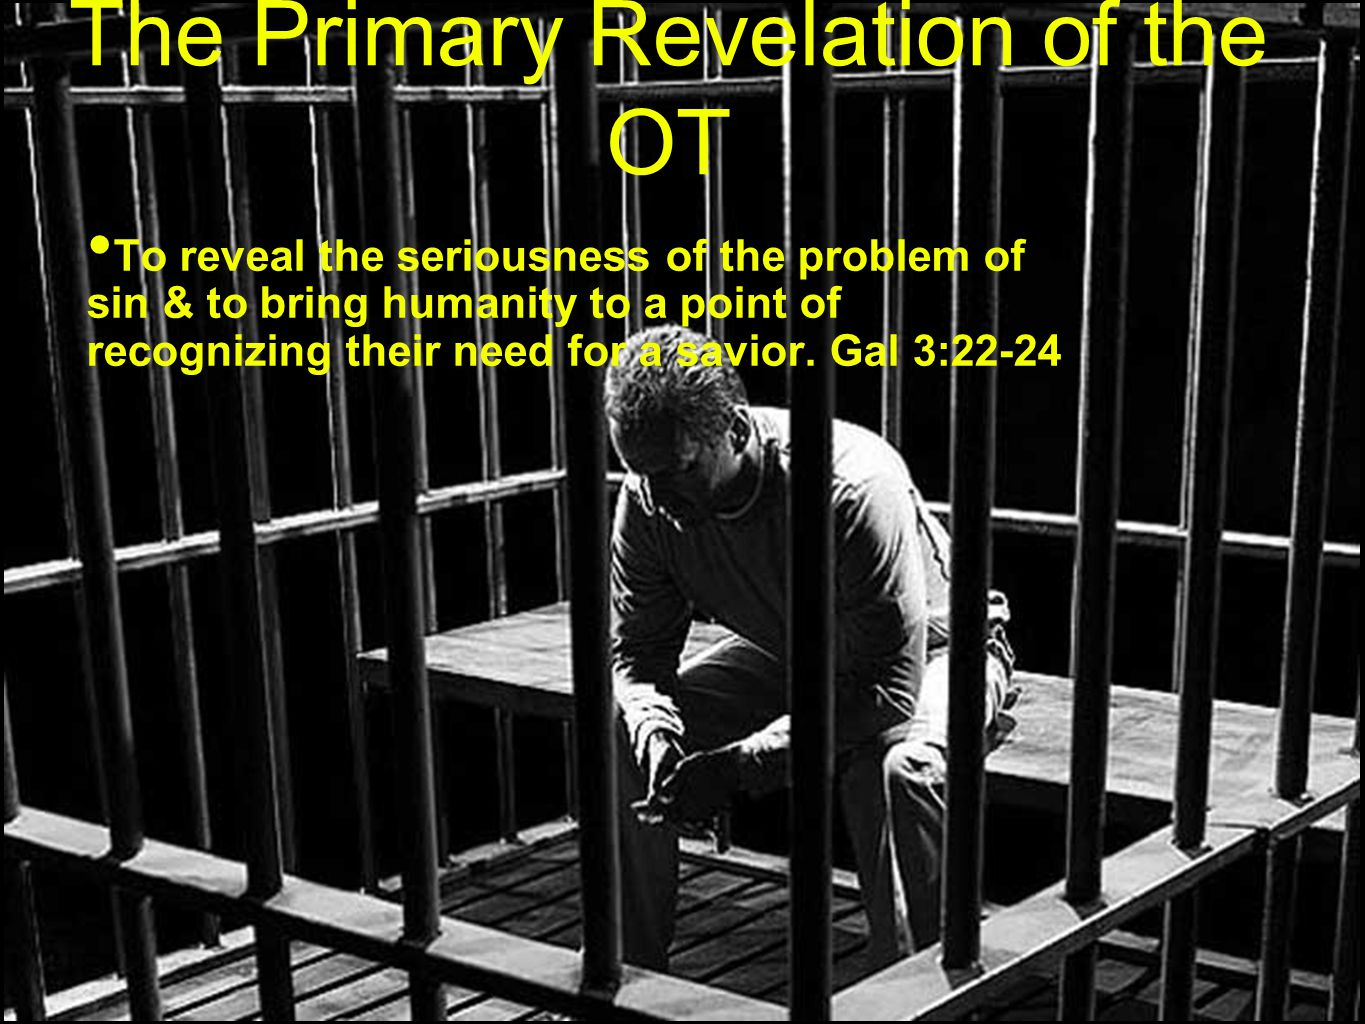 The Primary Revelation of the OT